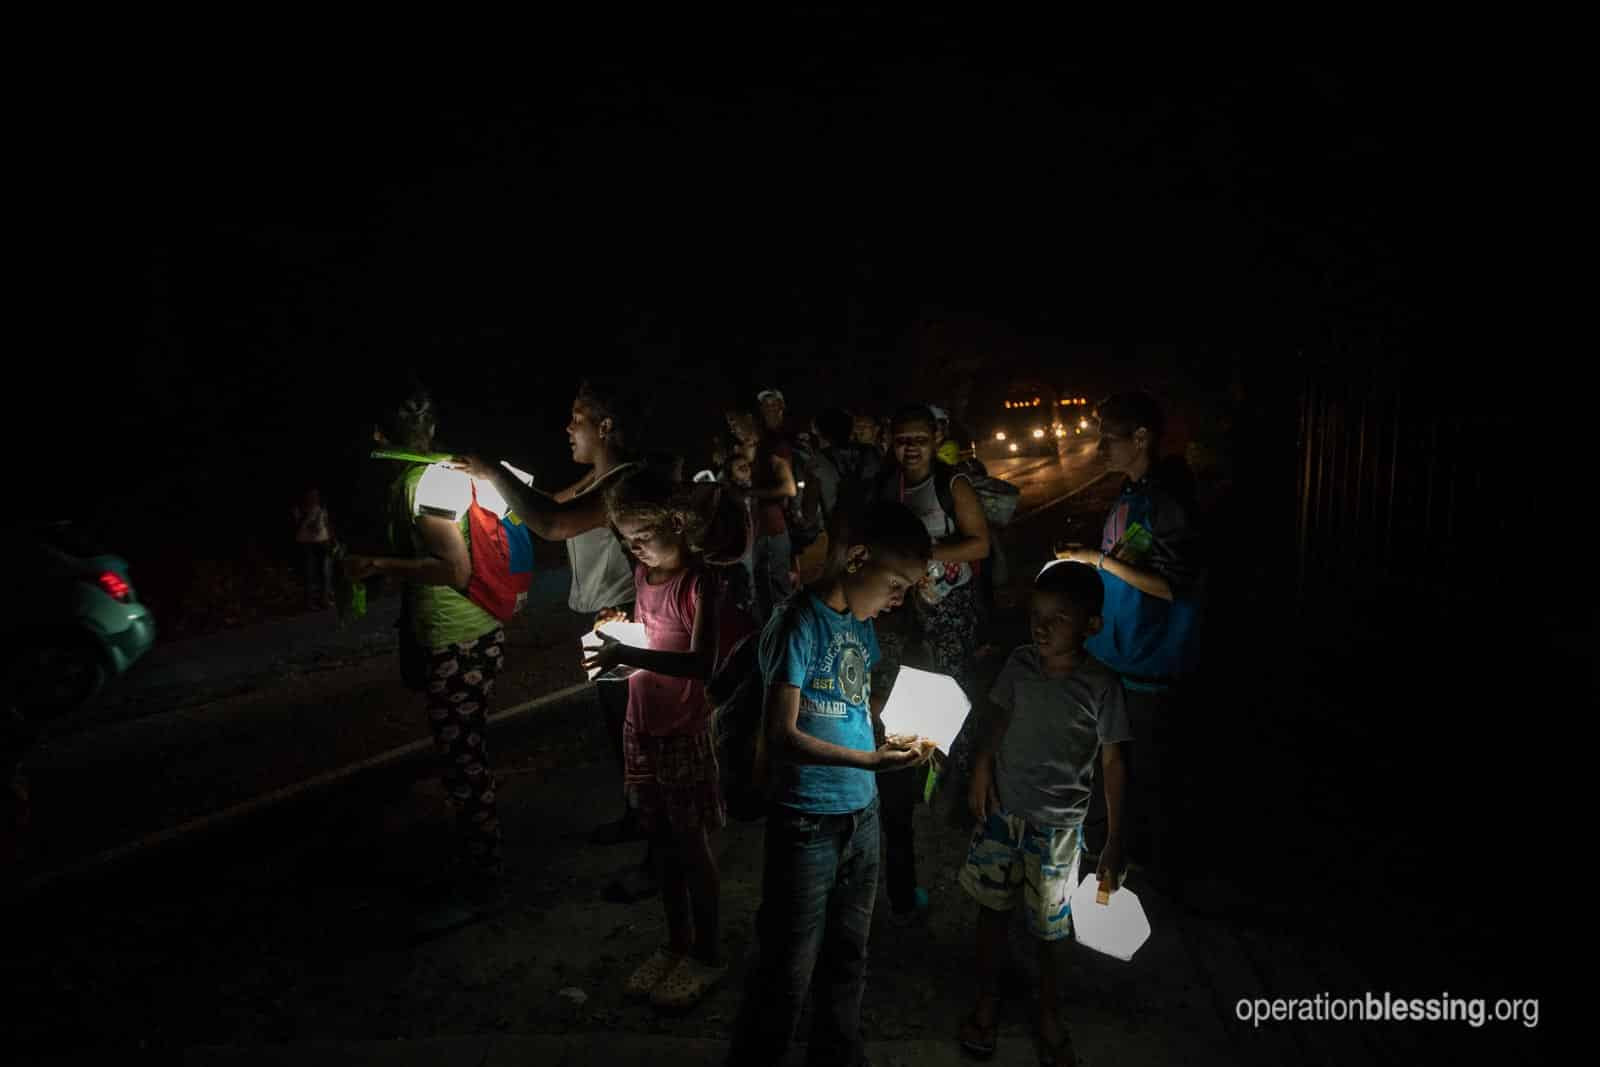 Venenzuelan refugees receive solar lights from Operation Blessing along a dangerous road.